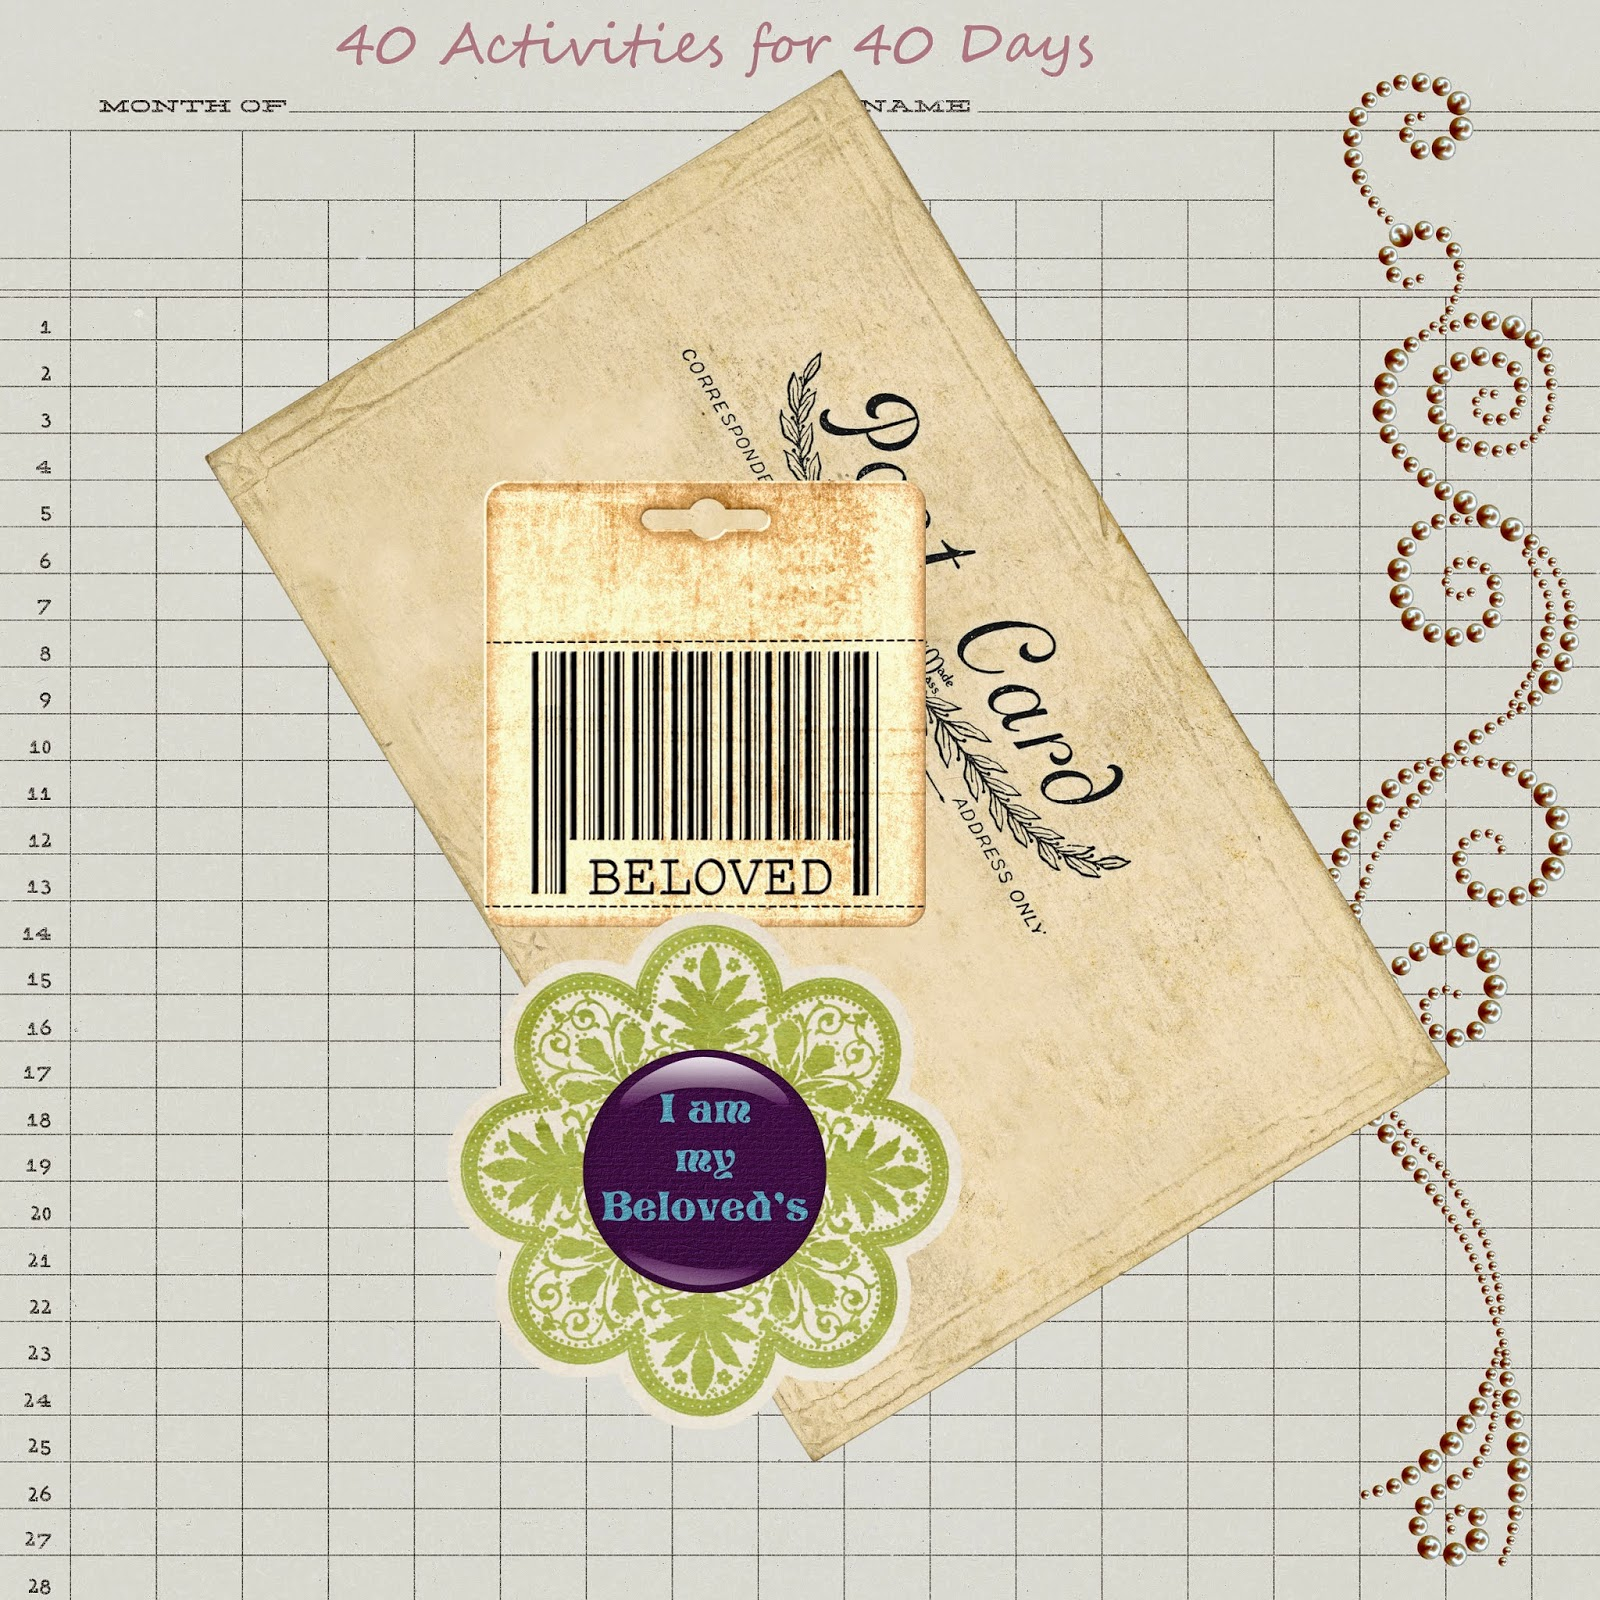 Catholic Youth And Children 40 Ideas For The 40 Days Of Lent